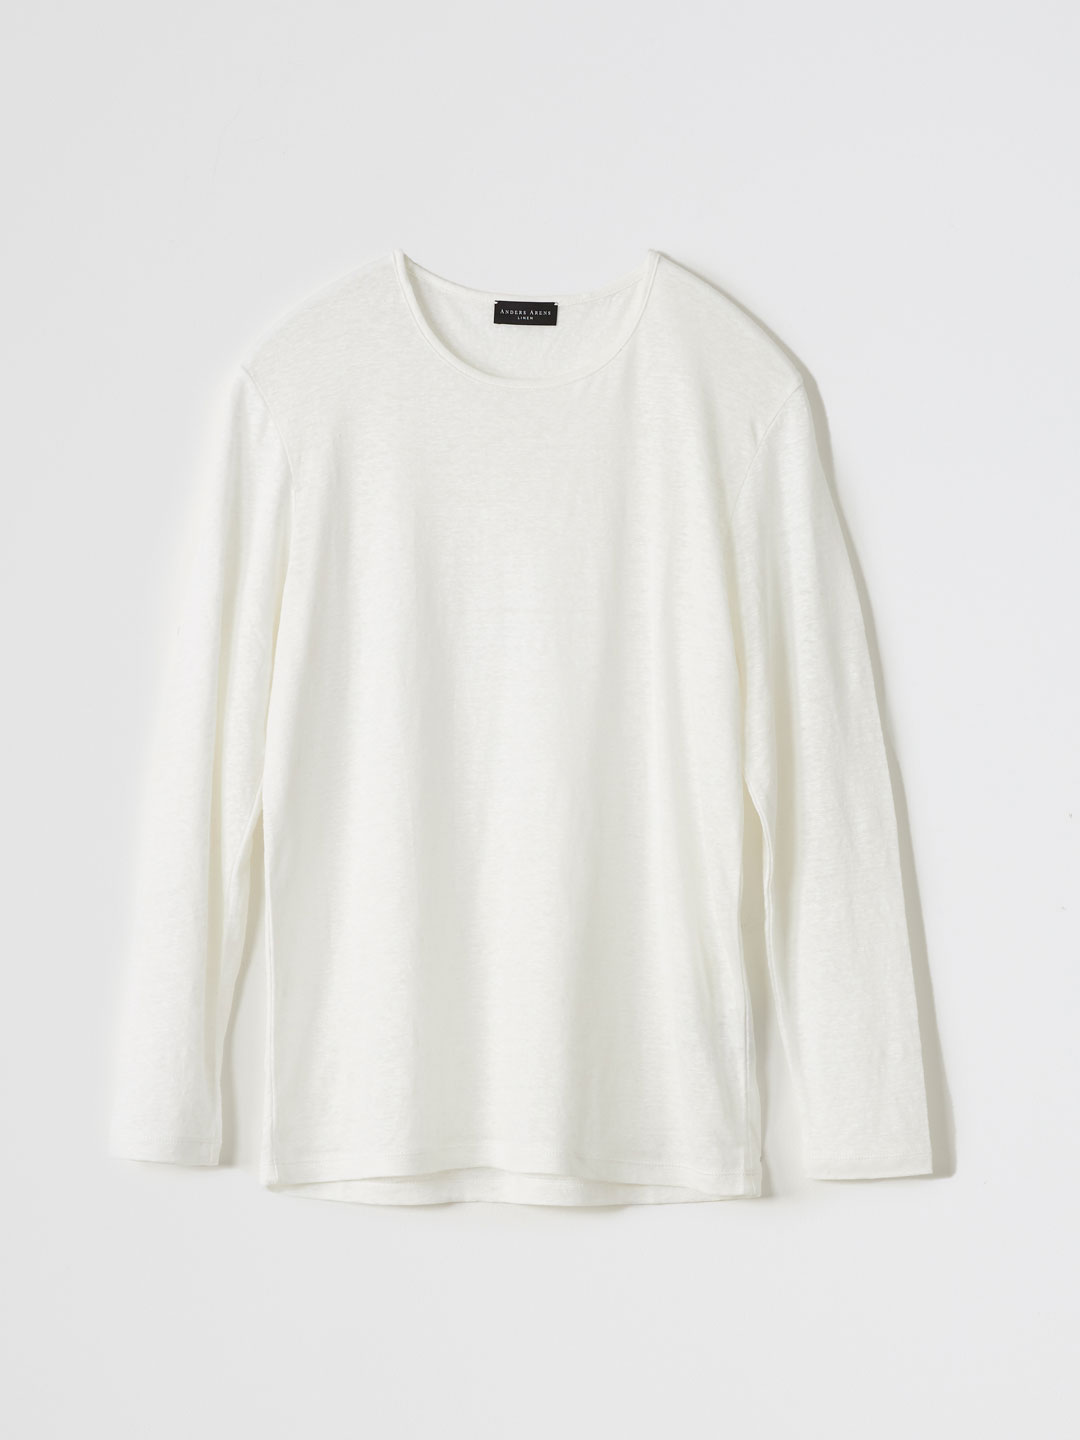 PARLEMENTIA LONG SLEEVE T-shirt - White